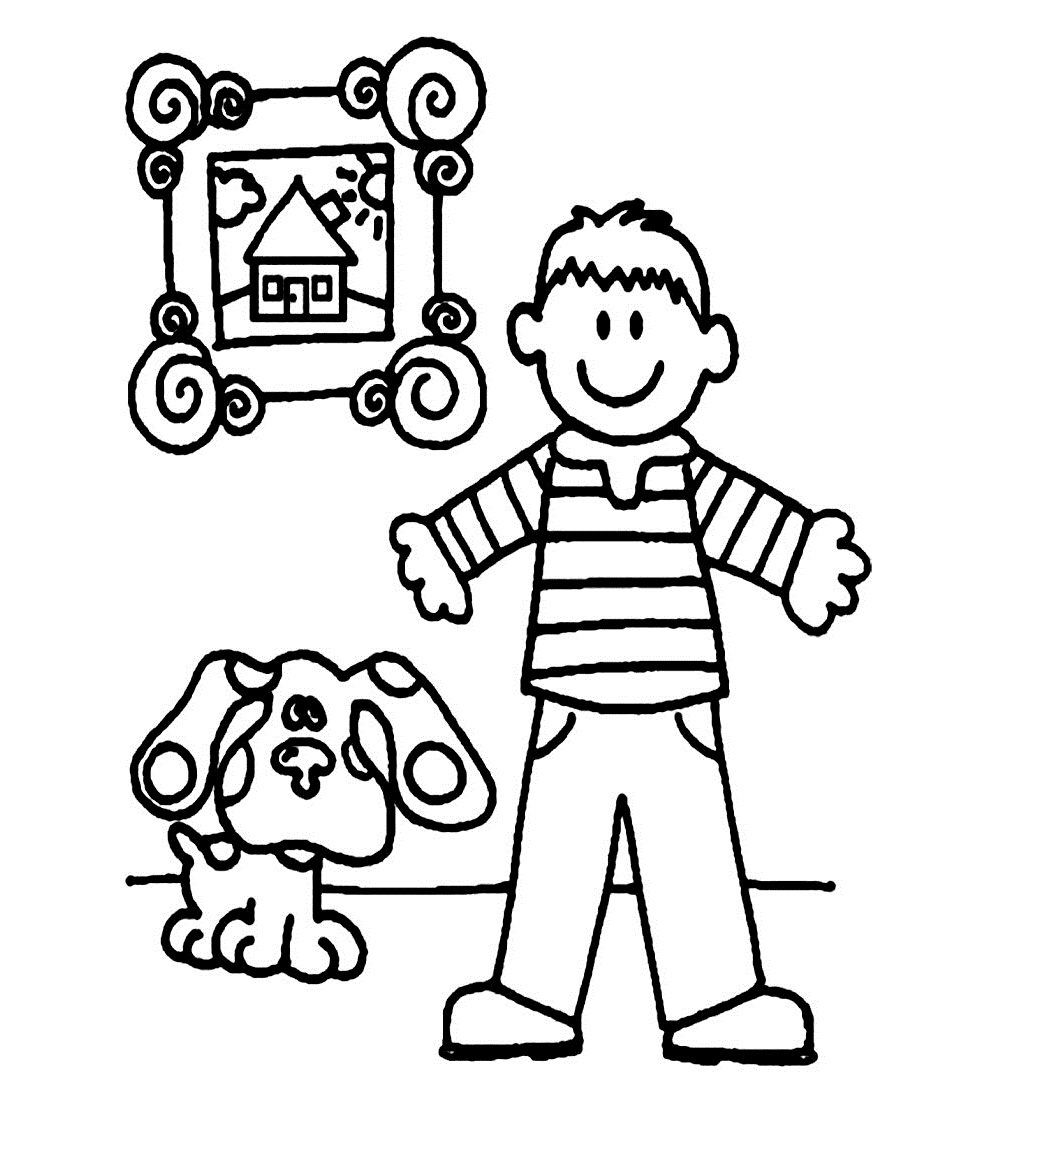 free boy coloring pages free printable boy coloring pages for kids free coloring boy pages